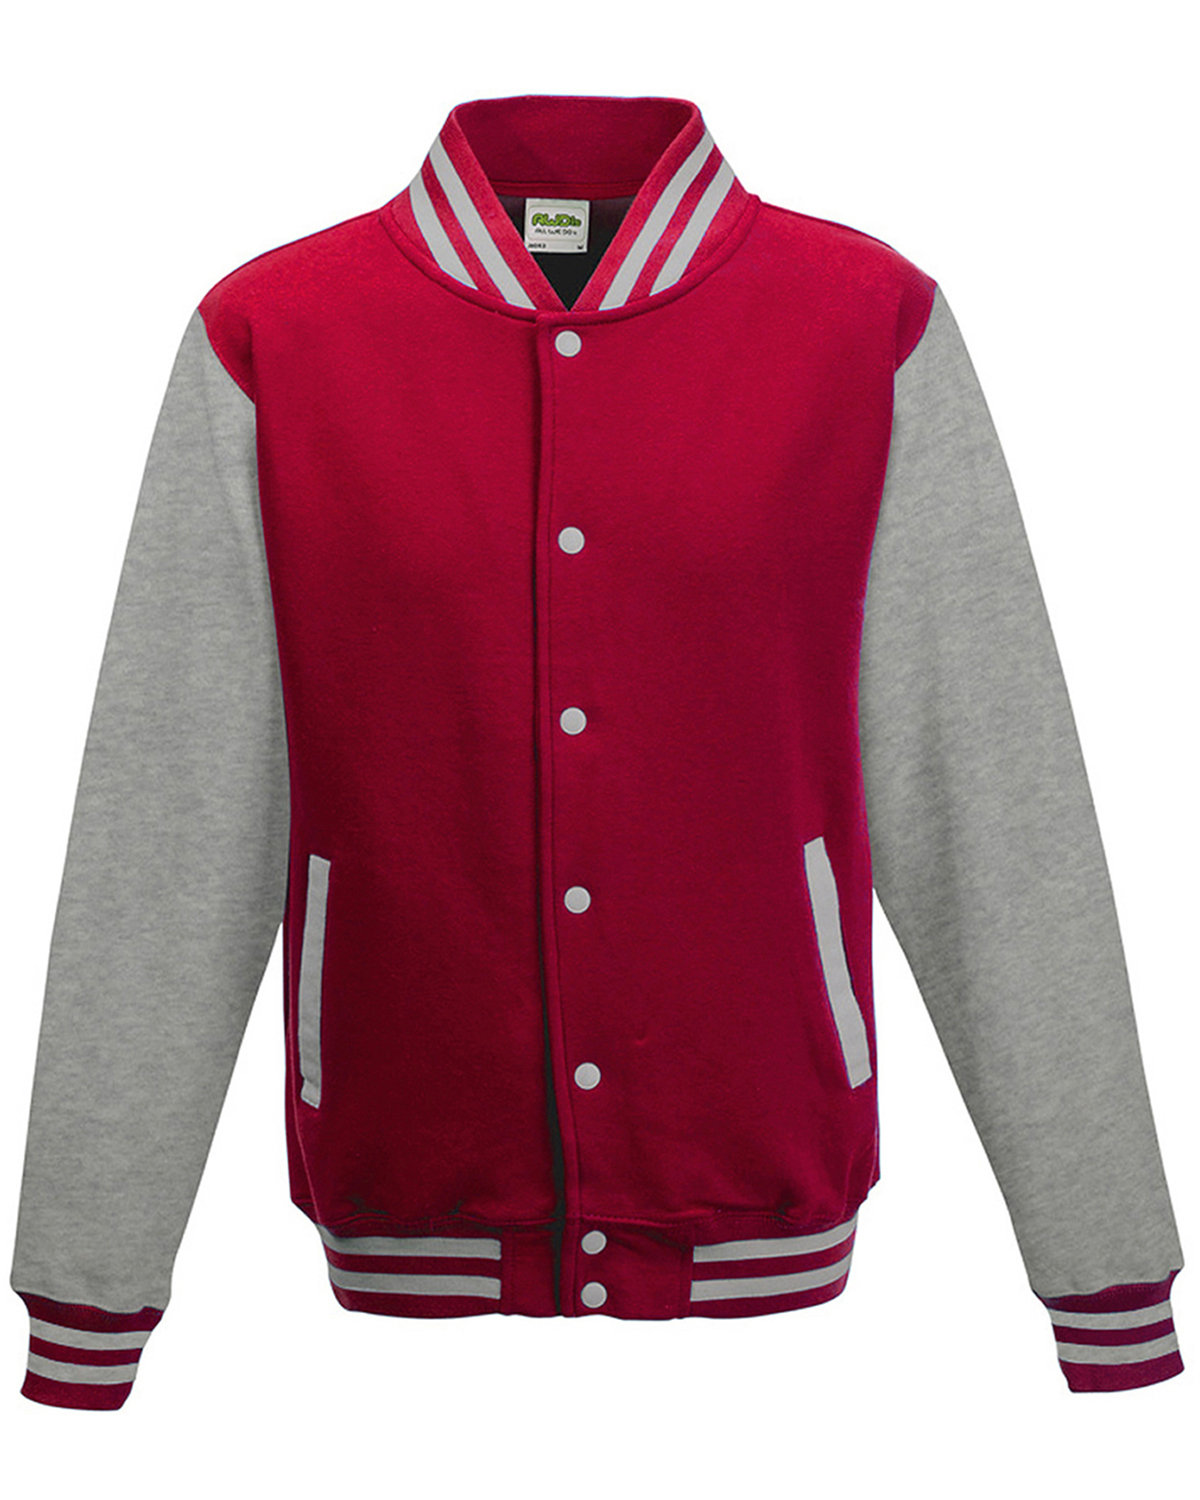 Just Hoods By AWDis Youth 80/20 Heavyweight Letterman Jacket FIRE RD/ HTH GRY